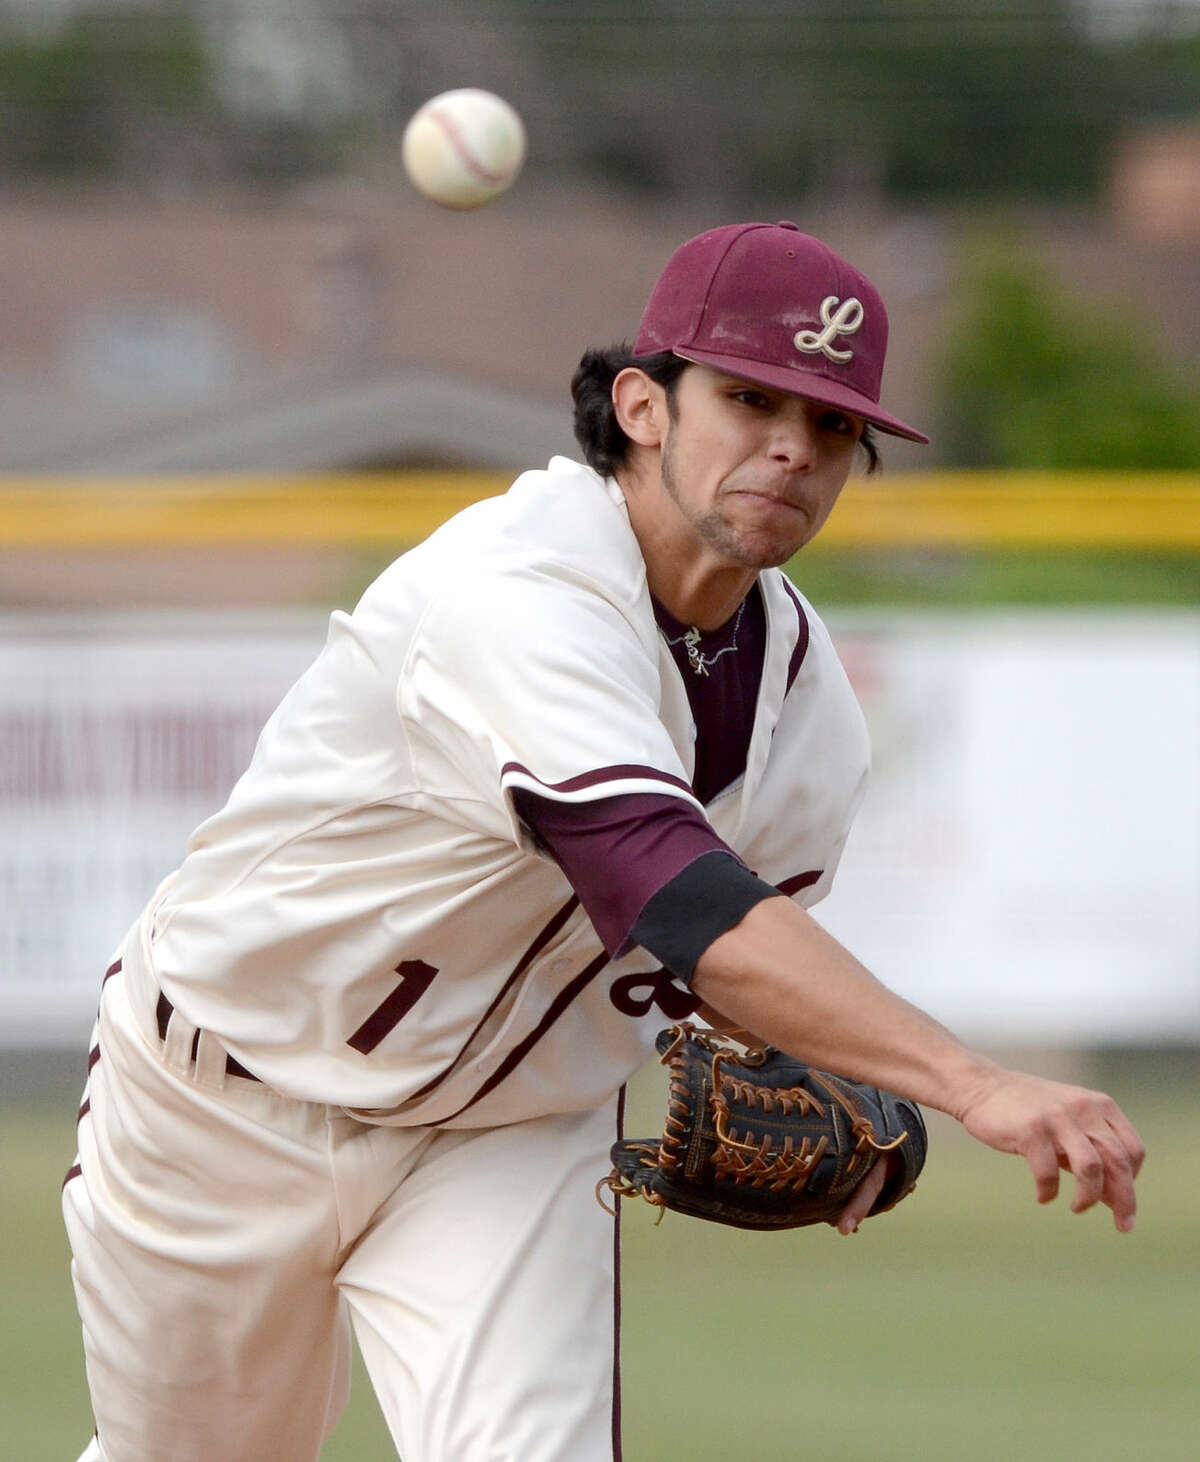 Lee High's Evan Mata pitches against San Angelo Central on Tuesday, April 28, 2015, at Ernie Johnson Field. James Durbin/Reporter-Telegram